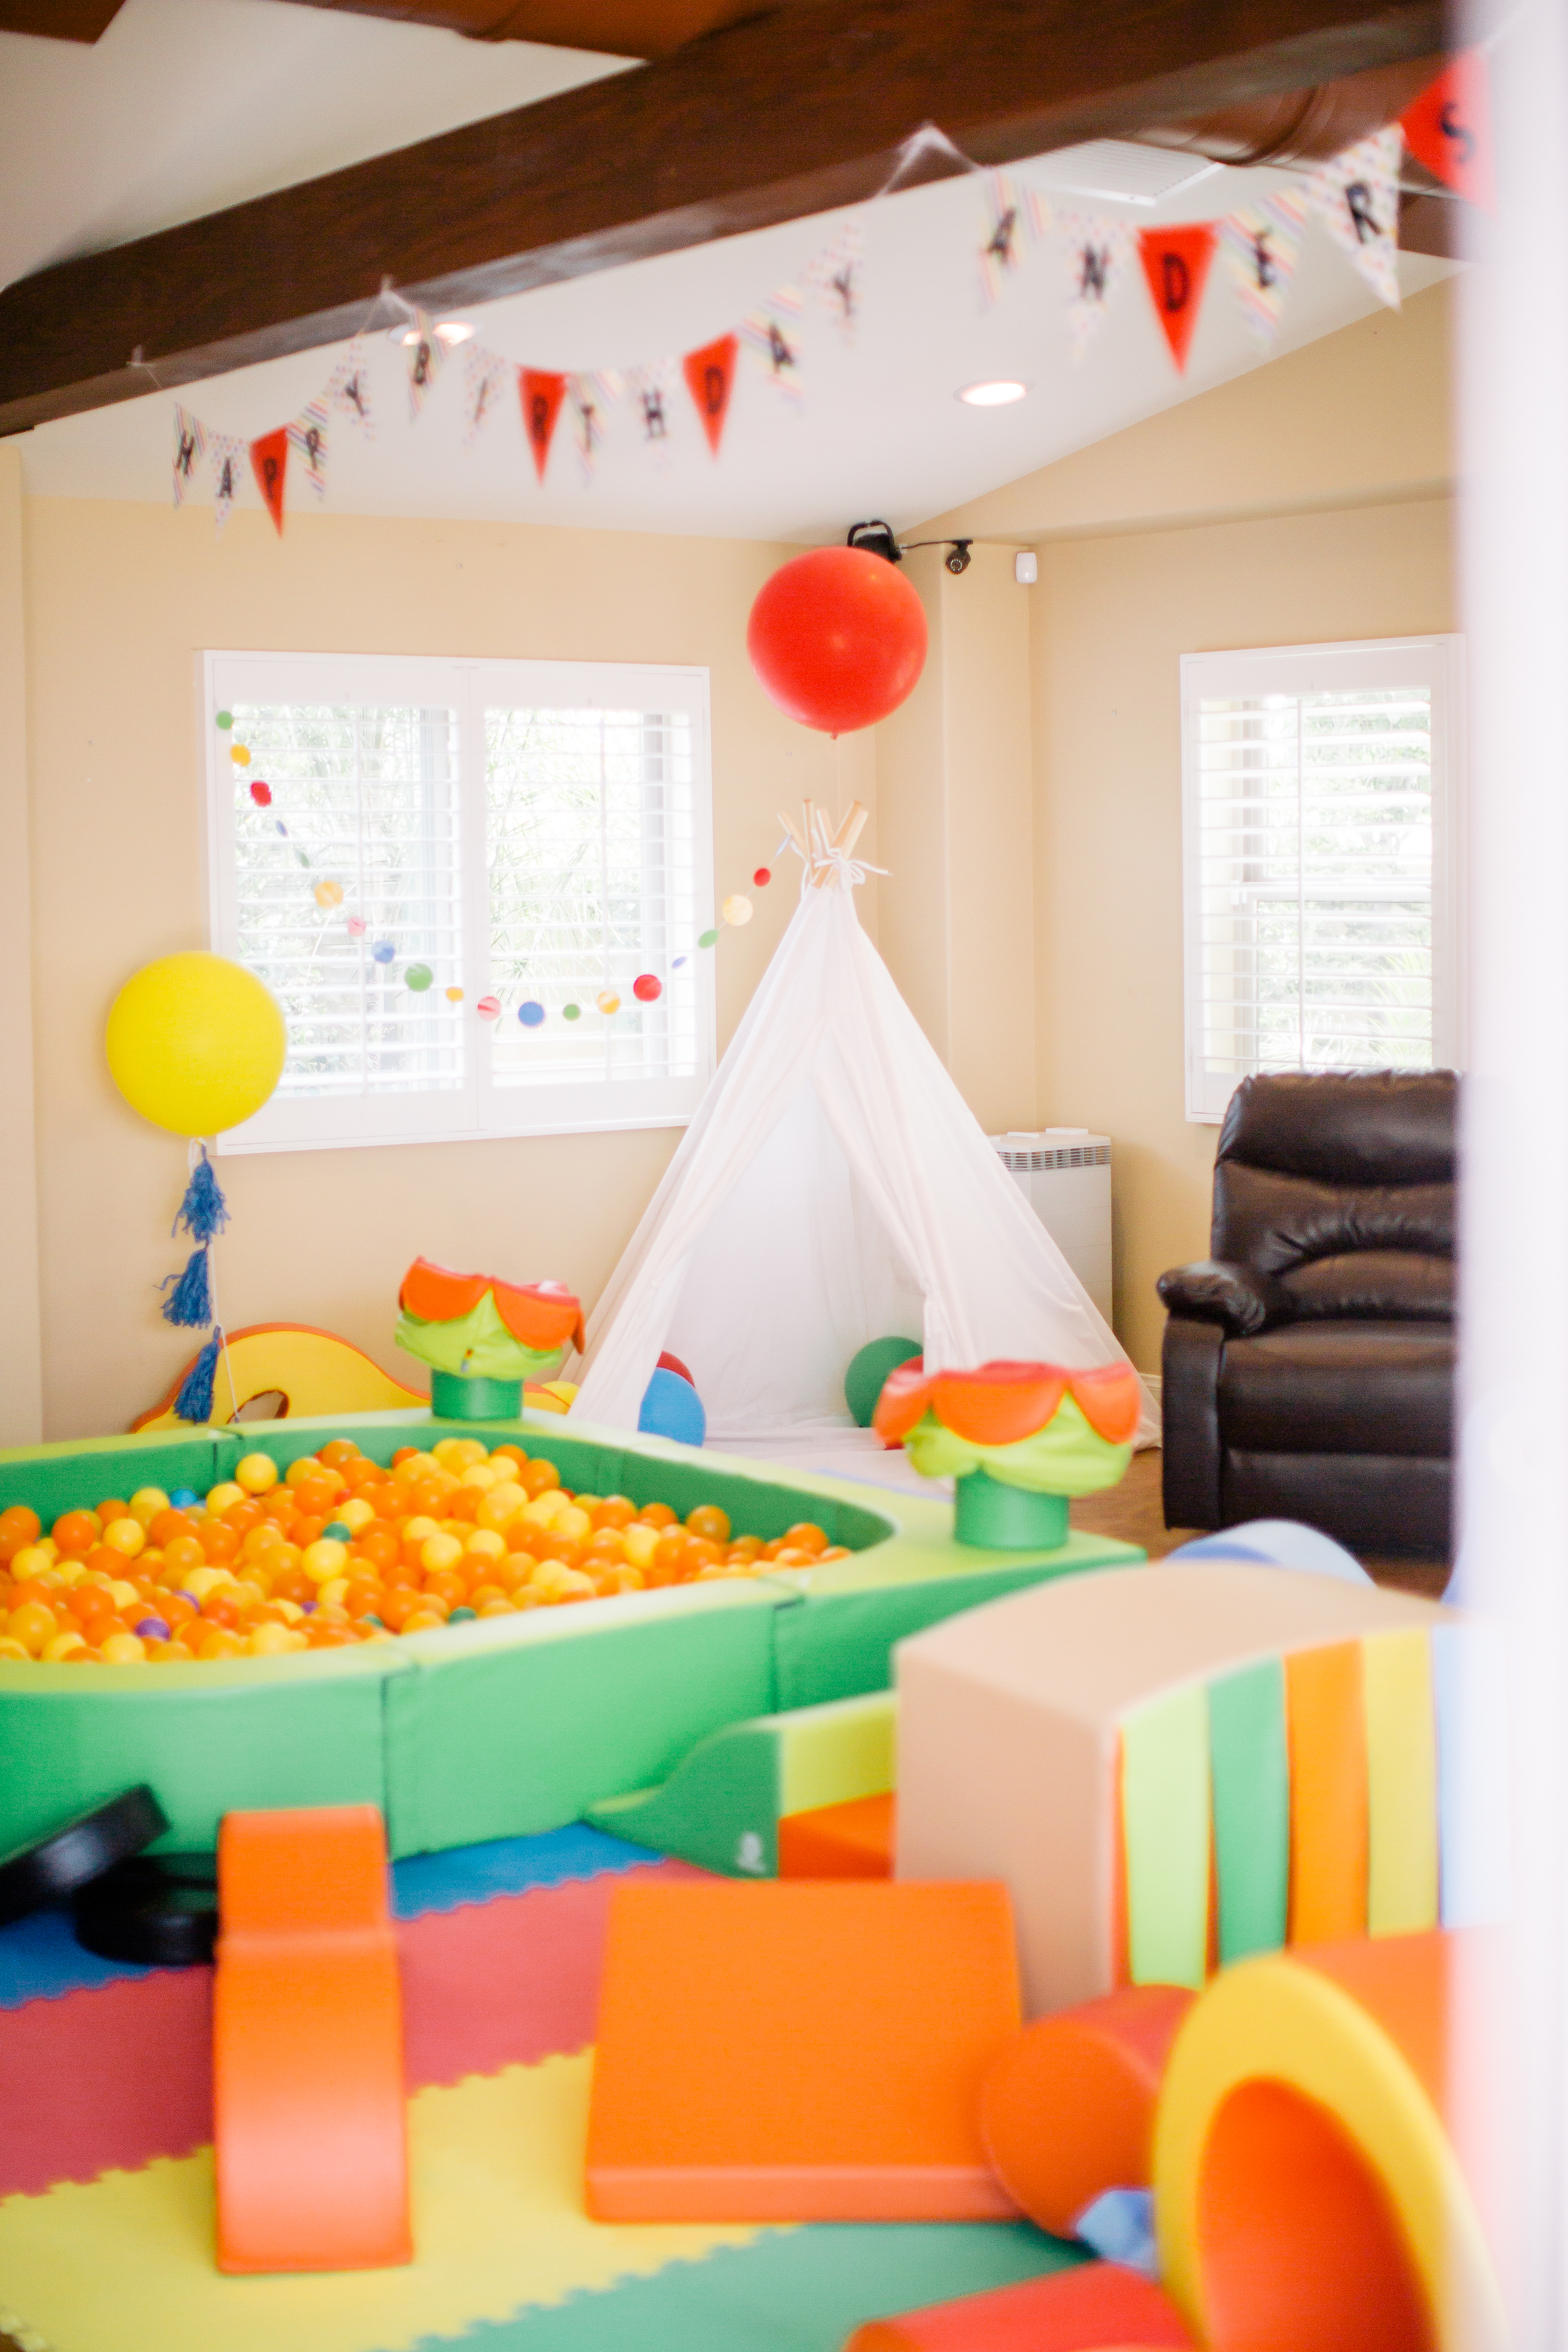 The Bright Colors Definitely Fit Theme Of Party Beautifully Kids LOVED This It Can Be Set Up Indoors Or Out